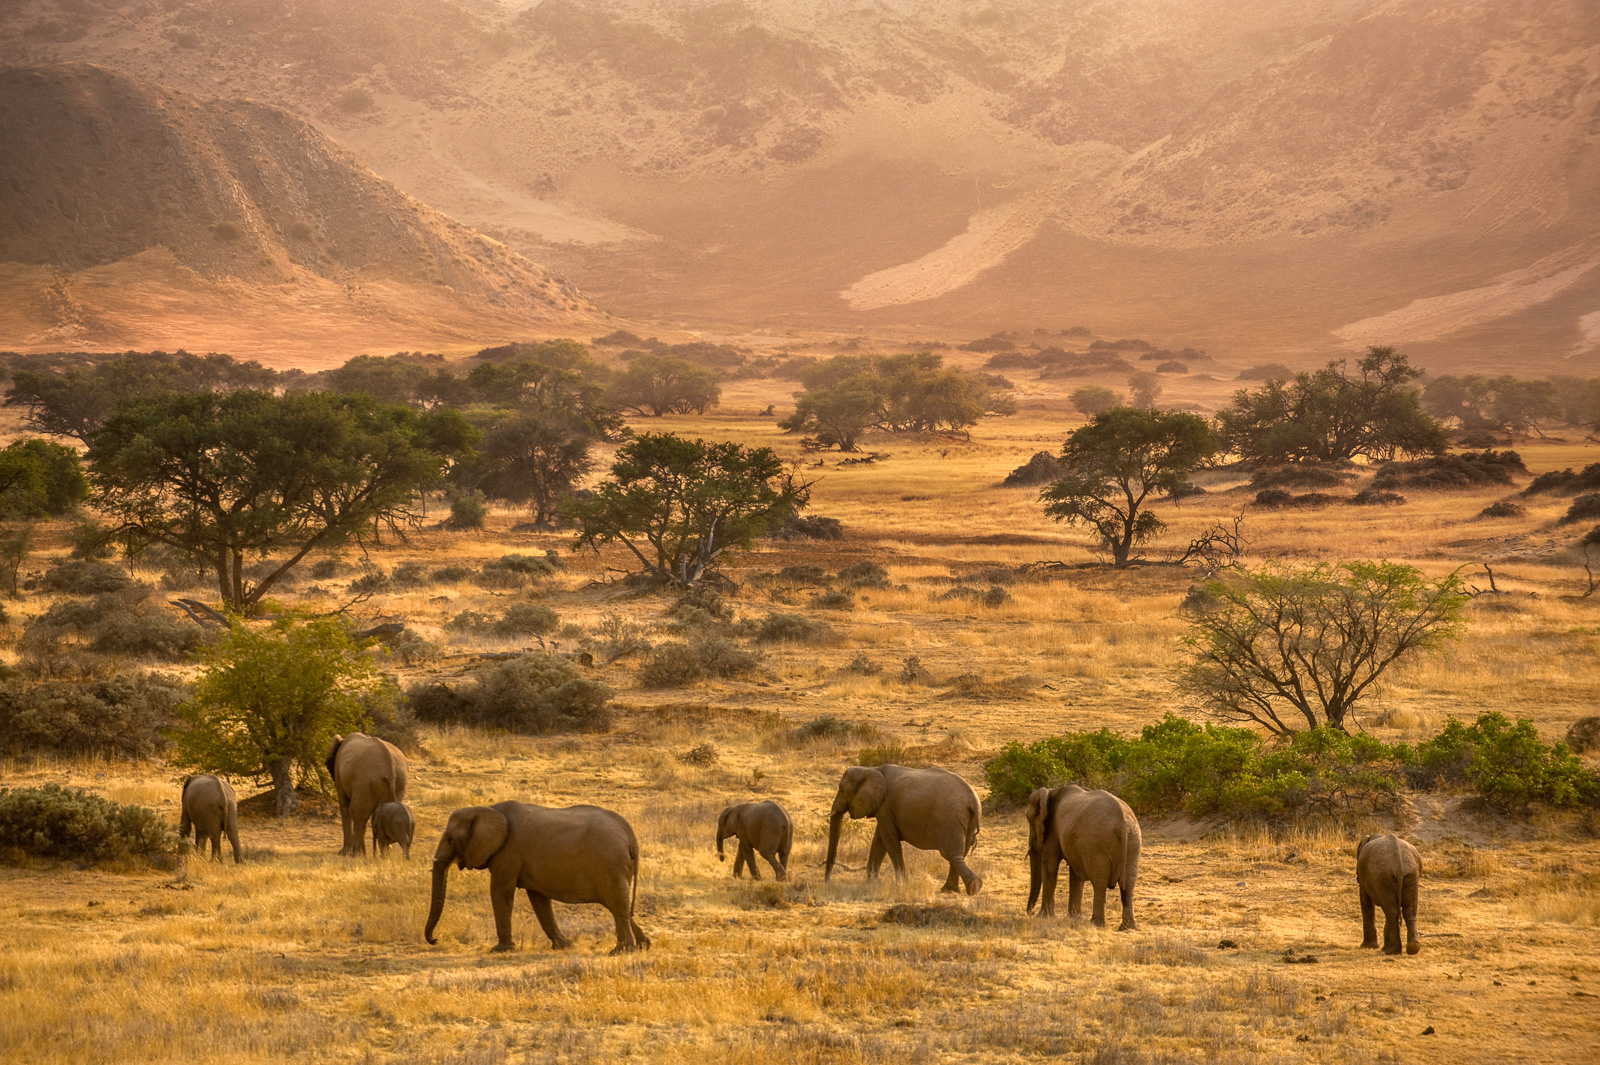 Desert elephants, Huab River, Torra Conservancy, Damaraland, Namibia